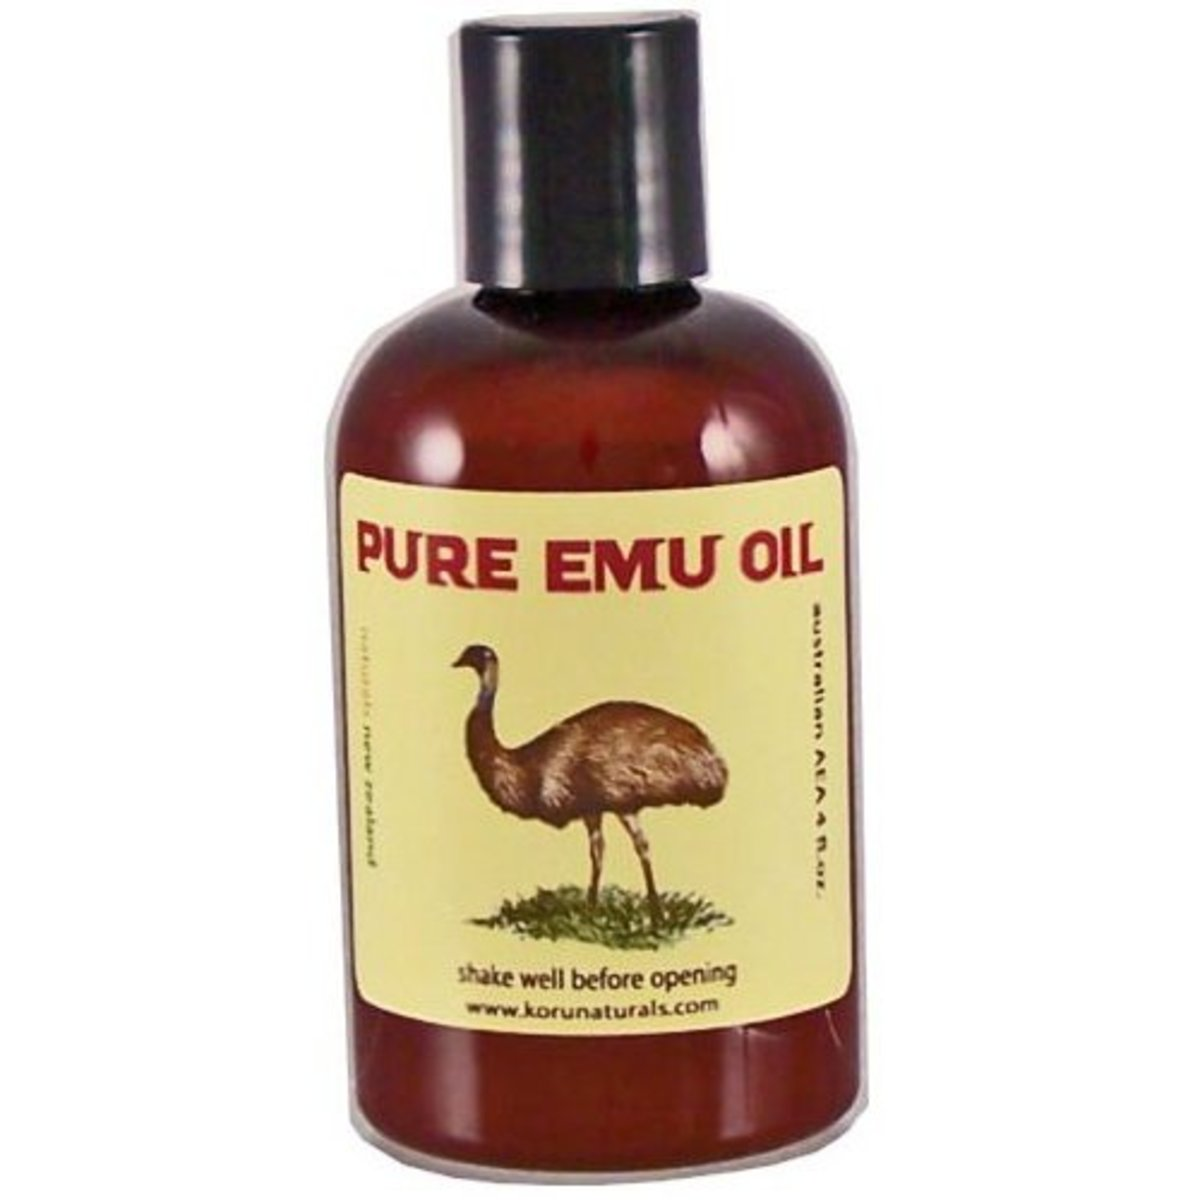 Emu Oil one of the best Beauty Oils for Skincare